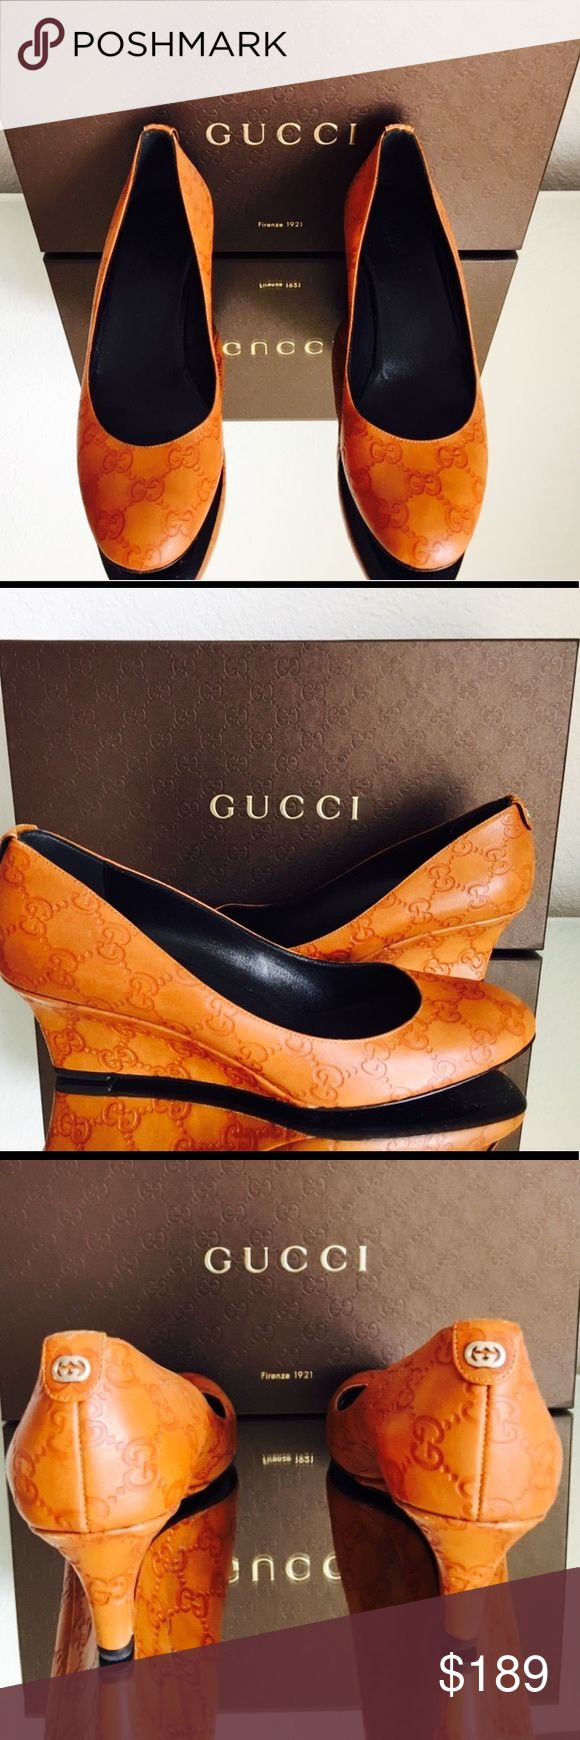 Gucci Embossed Leather Monogrammed Wedge Gucci Embossed Leather Monogrammed Wedge     Color: Carmel   Size: 38.5     Pre-loved - excellent condition     Est Retail: $695.00     Our Price: $189.00 Gucci Shoes Wedges